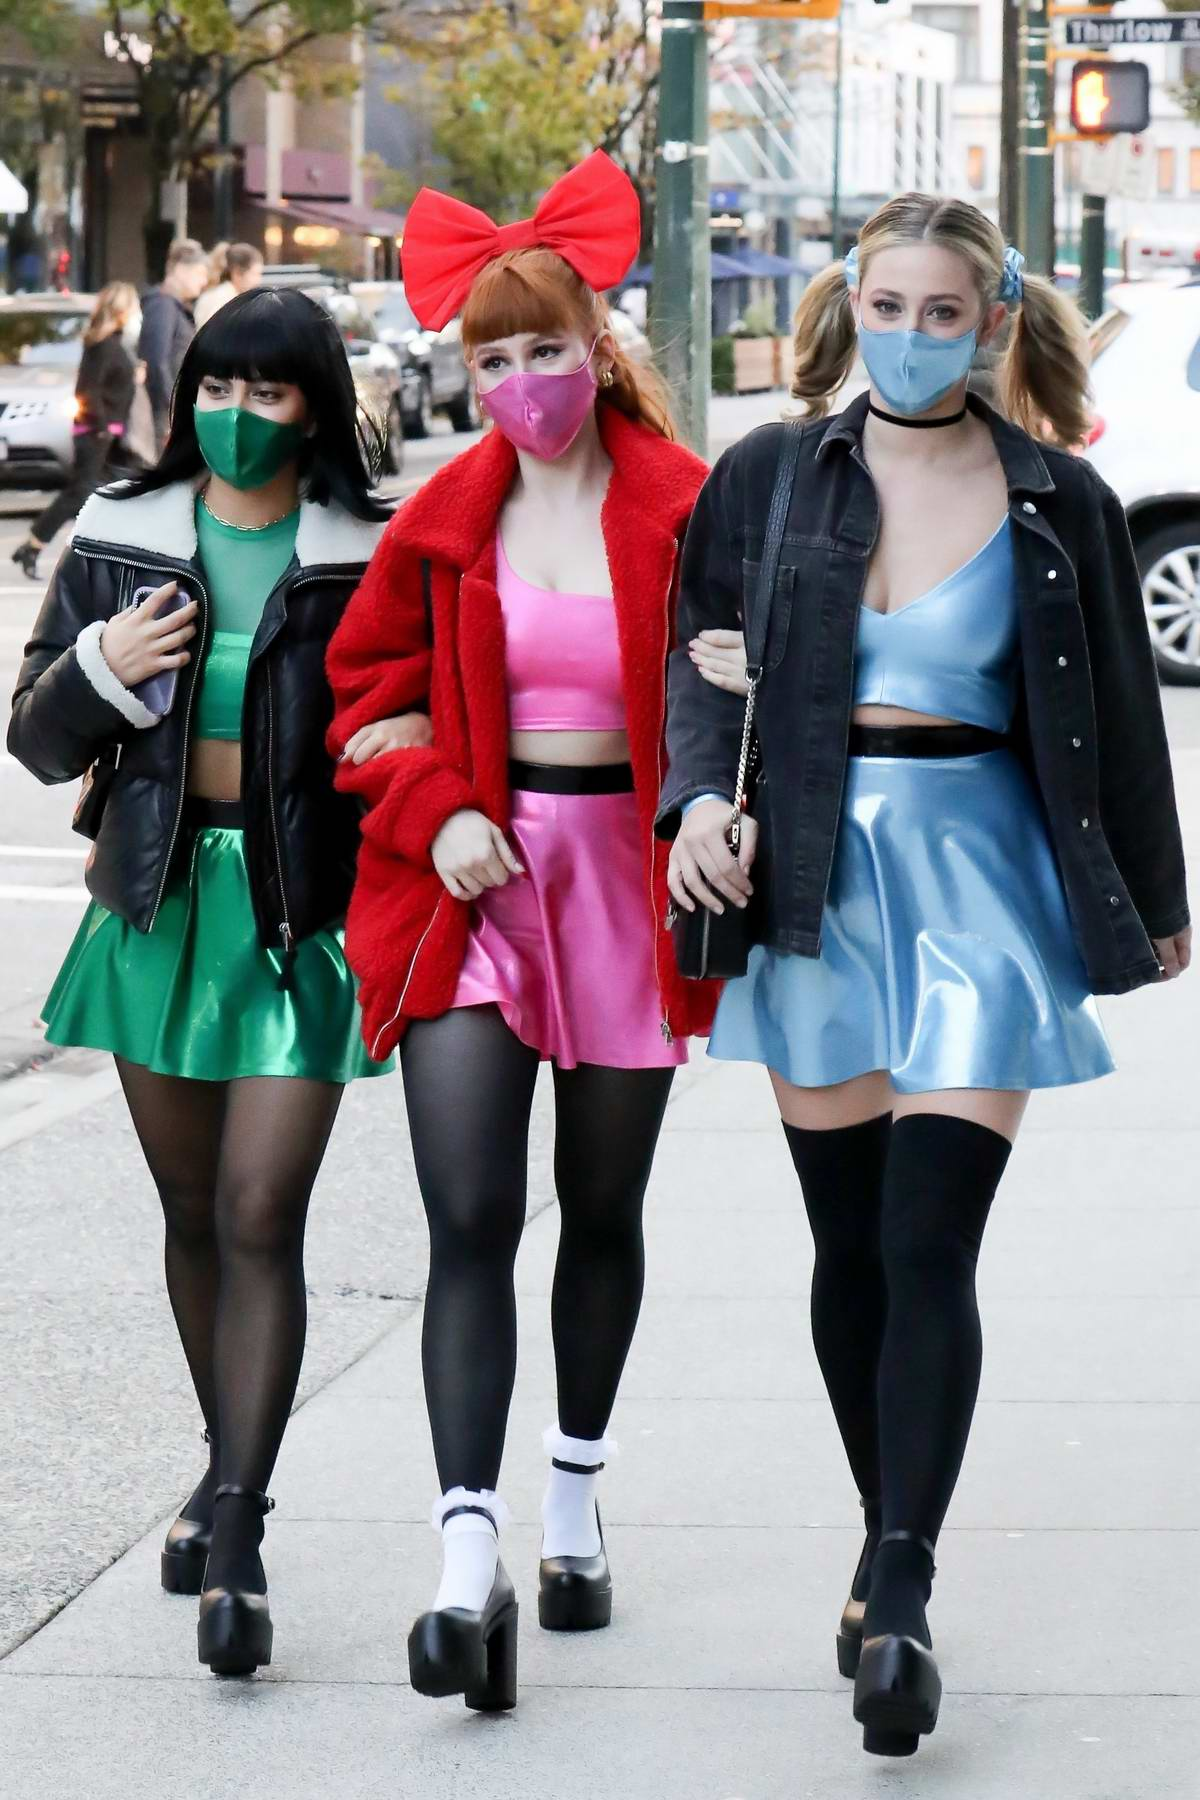 Lili Reinhart, Camila Mendes and Madelaine Petsch dress up as The Powerpuff Girls for Halloween as they step out in Vancouver, Canada